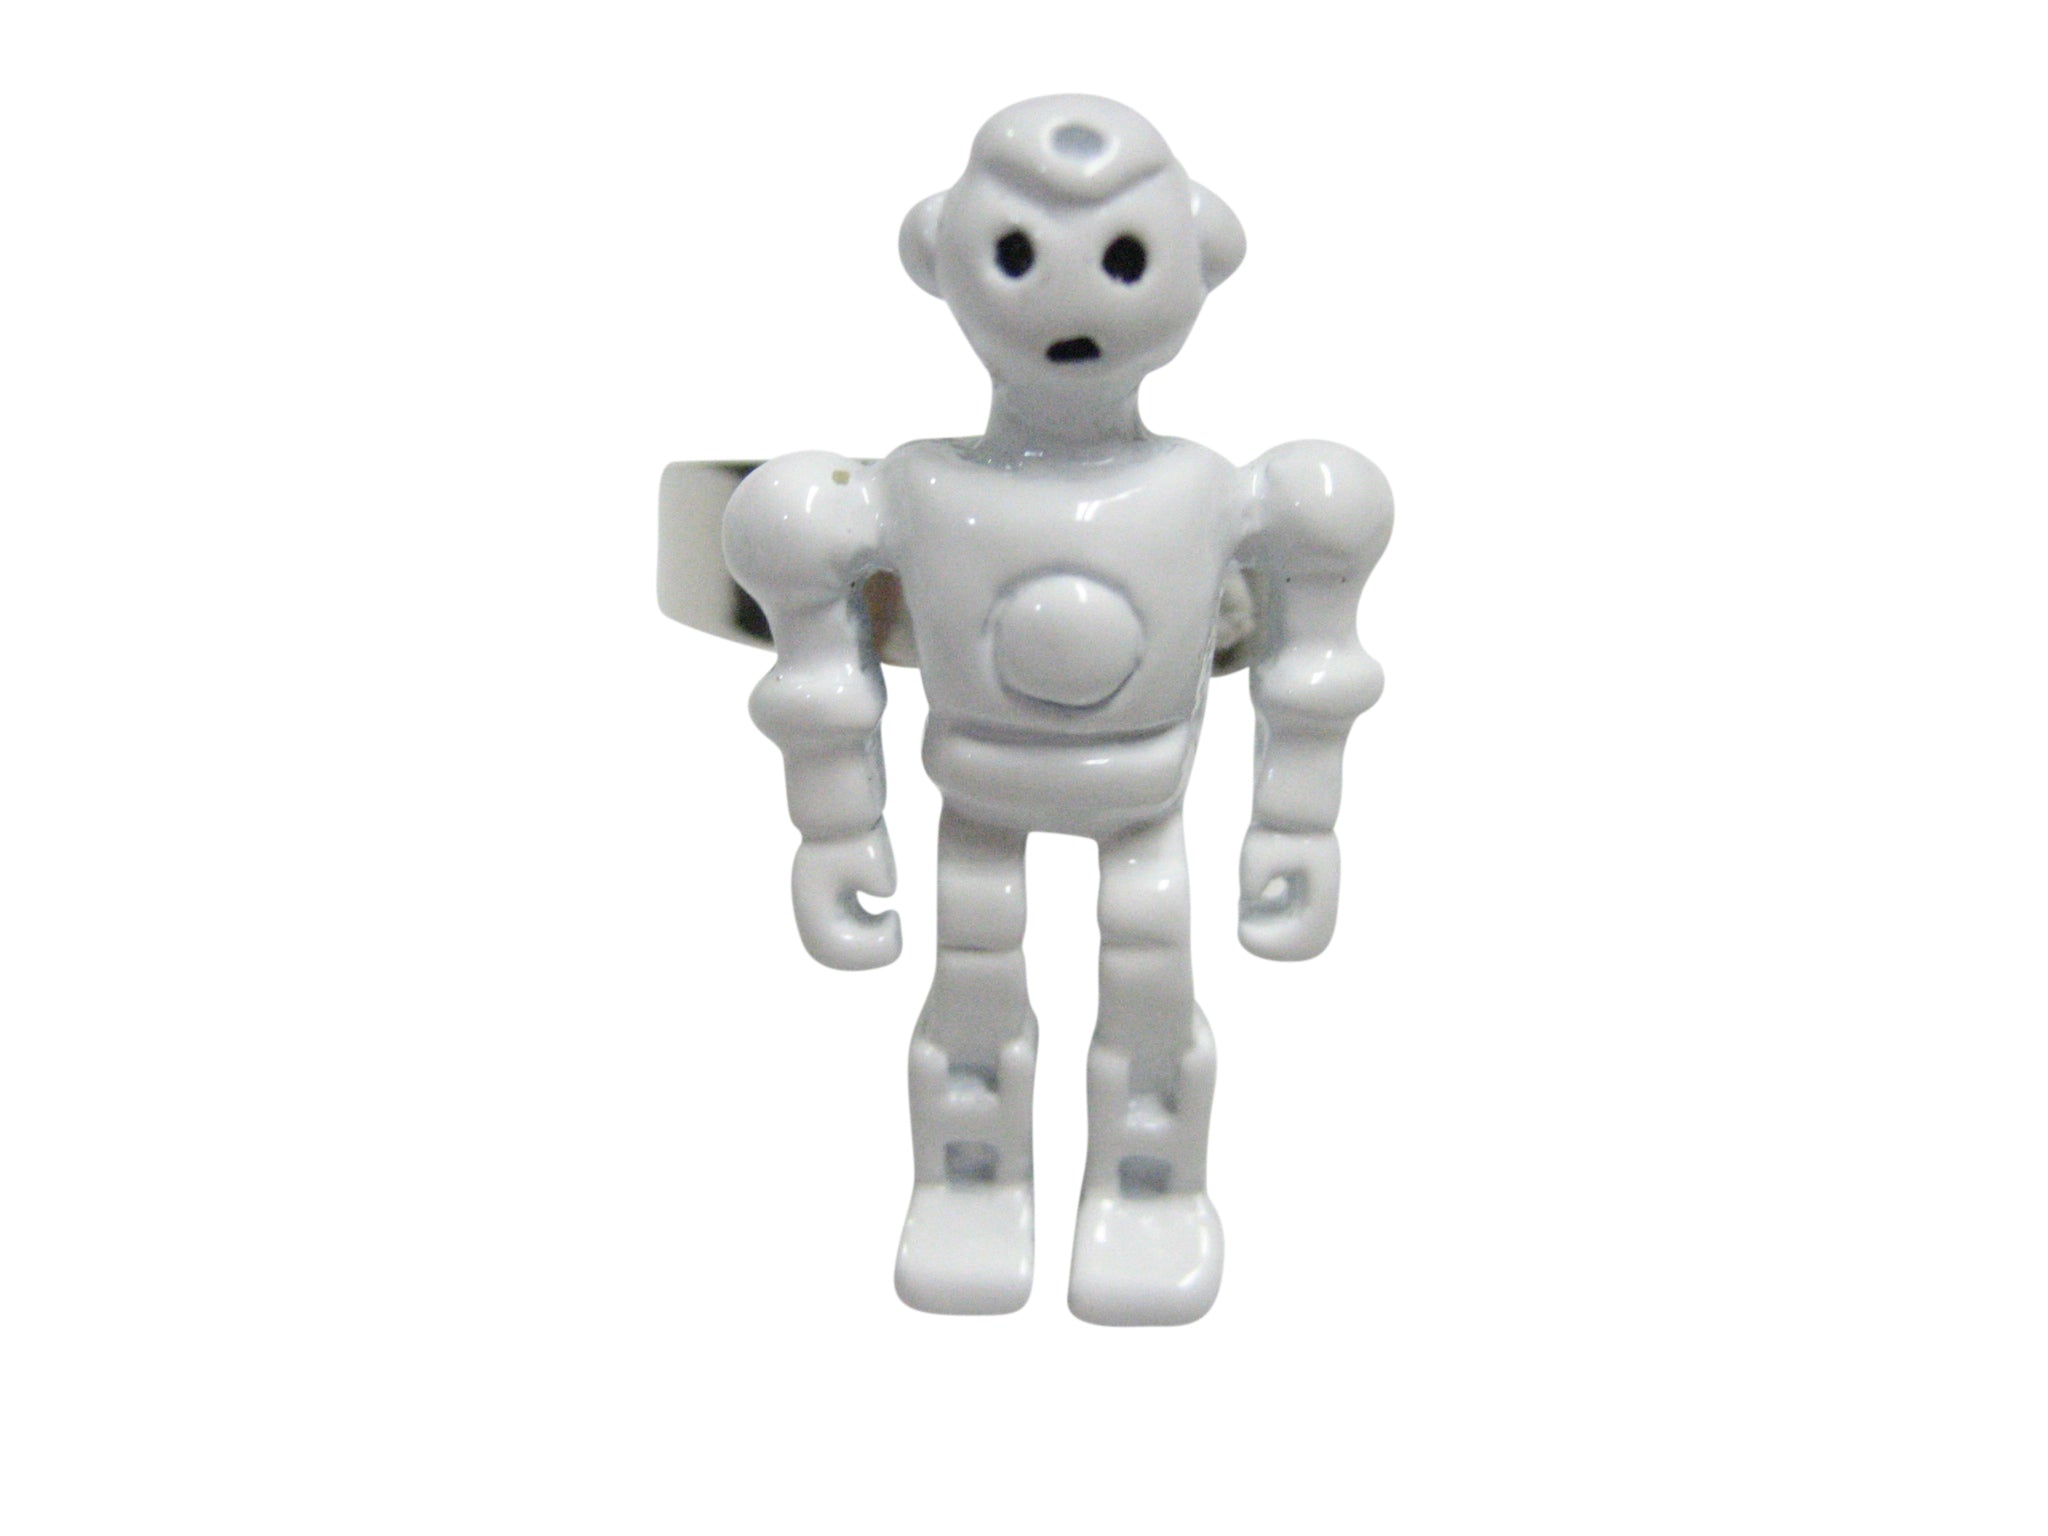 White Full Creepy Robot Adjustable Size Fashion Ring